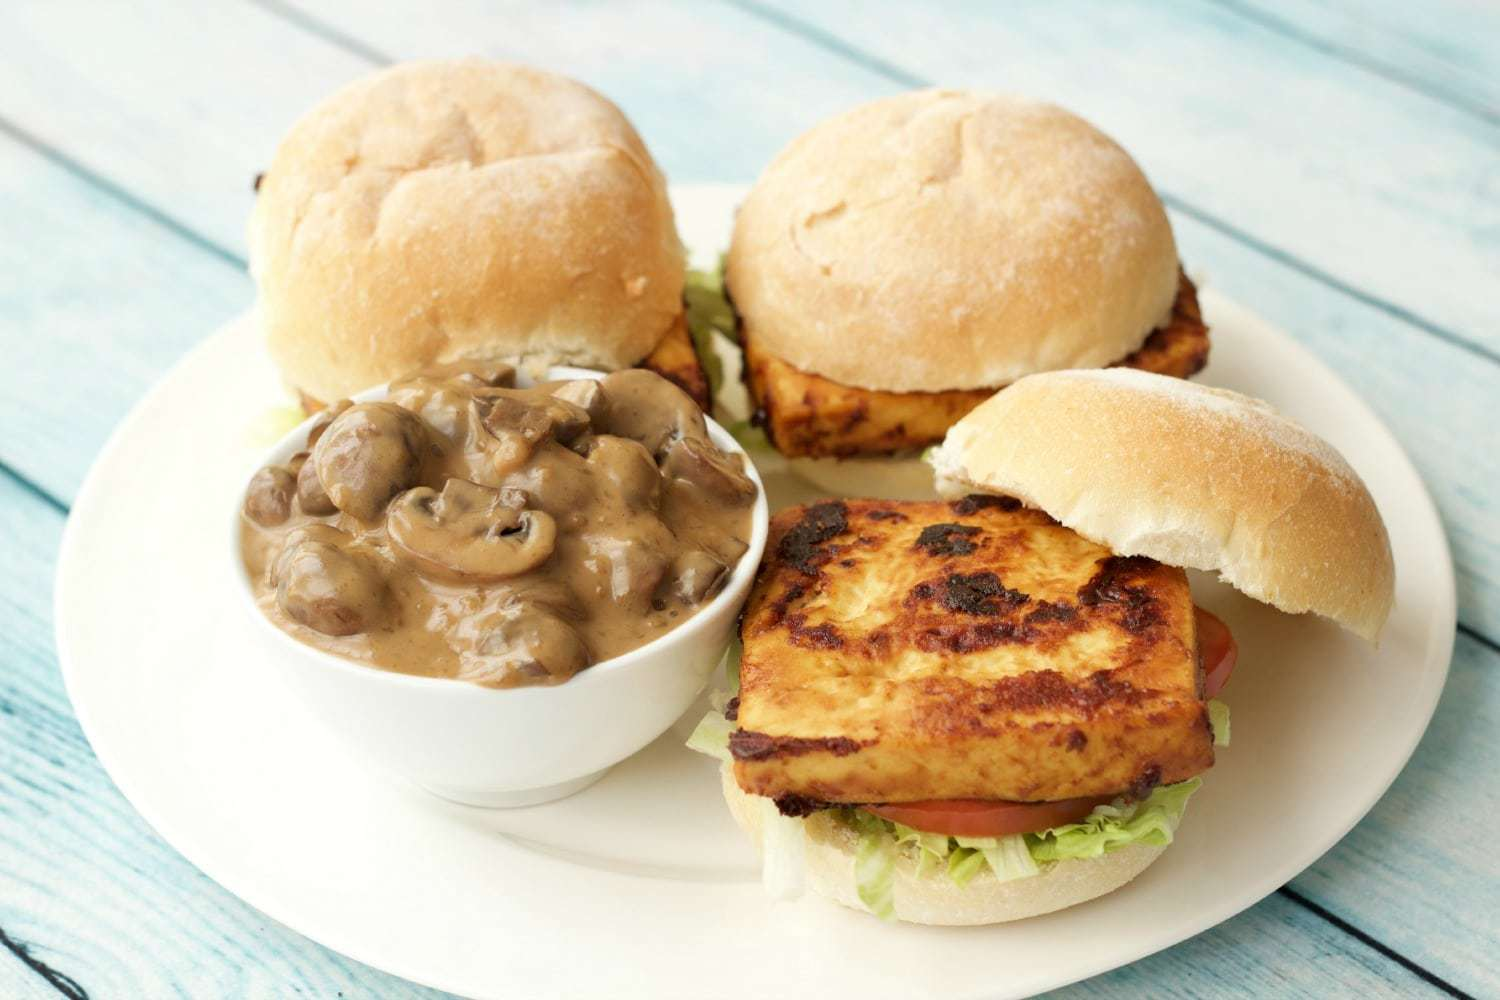 Three vegan tofu burgers and a bowl of mushroom sauce on a white plate.